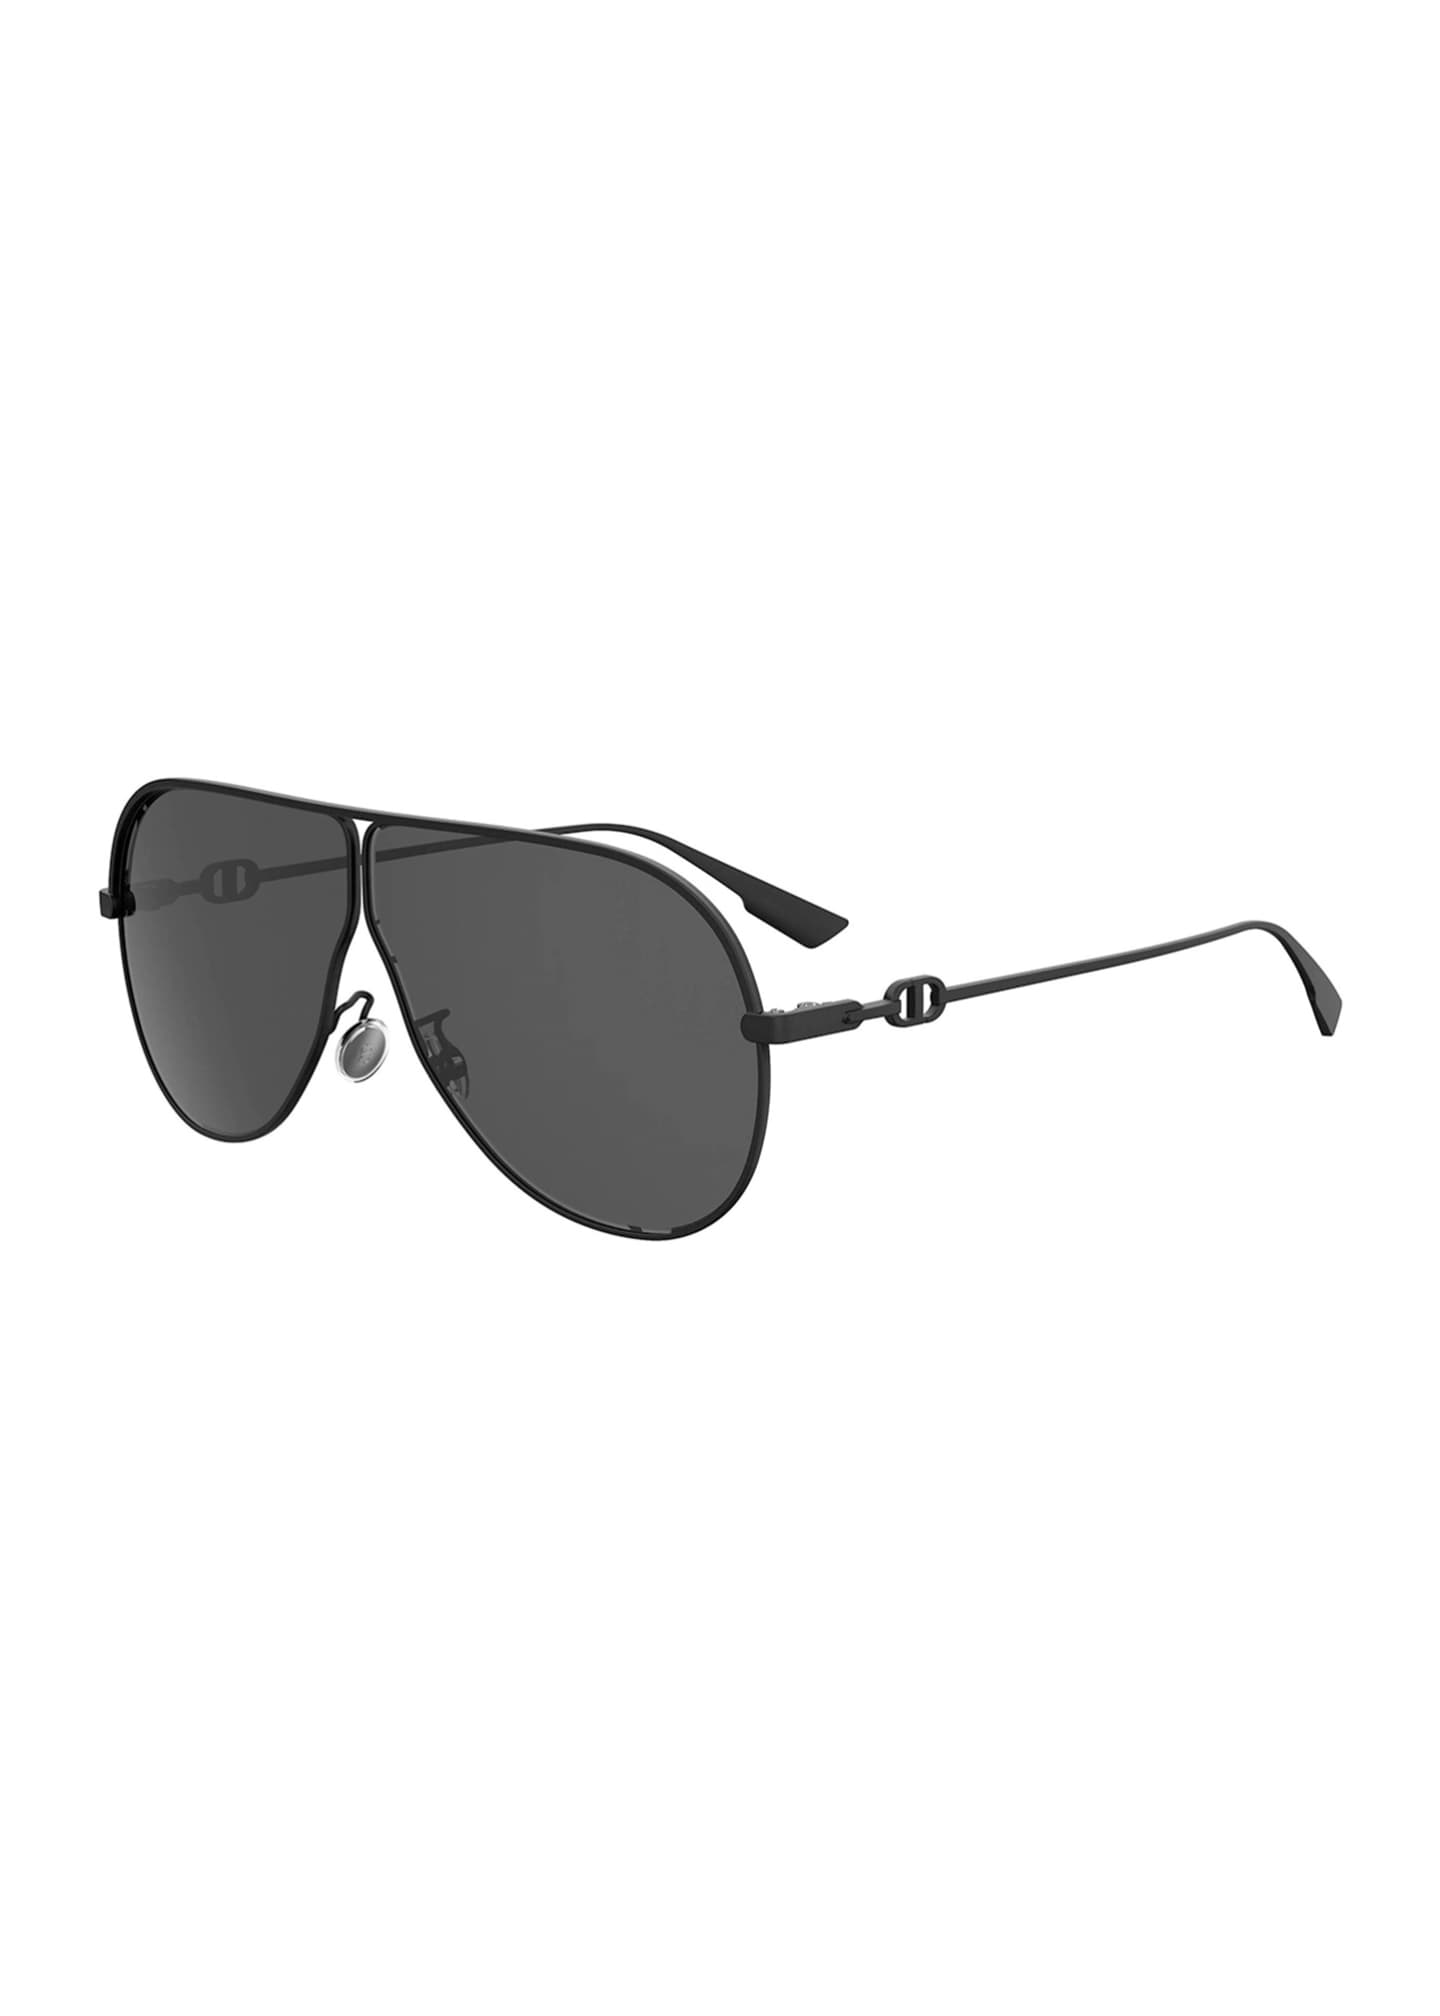 Image 1 of 1: DiorCamp Aviator Sunglasses